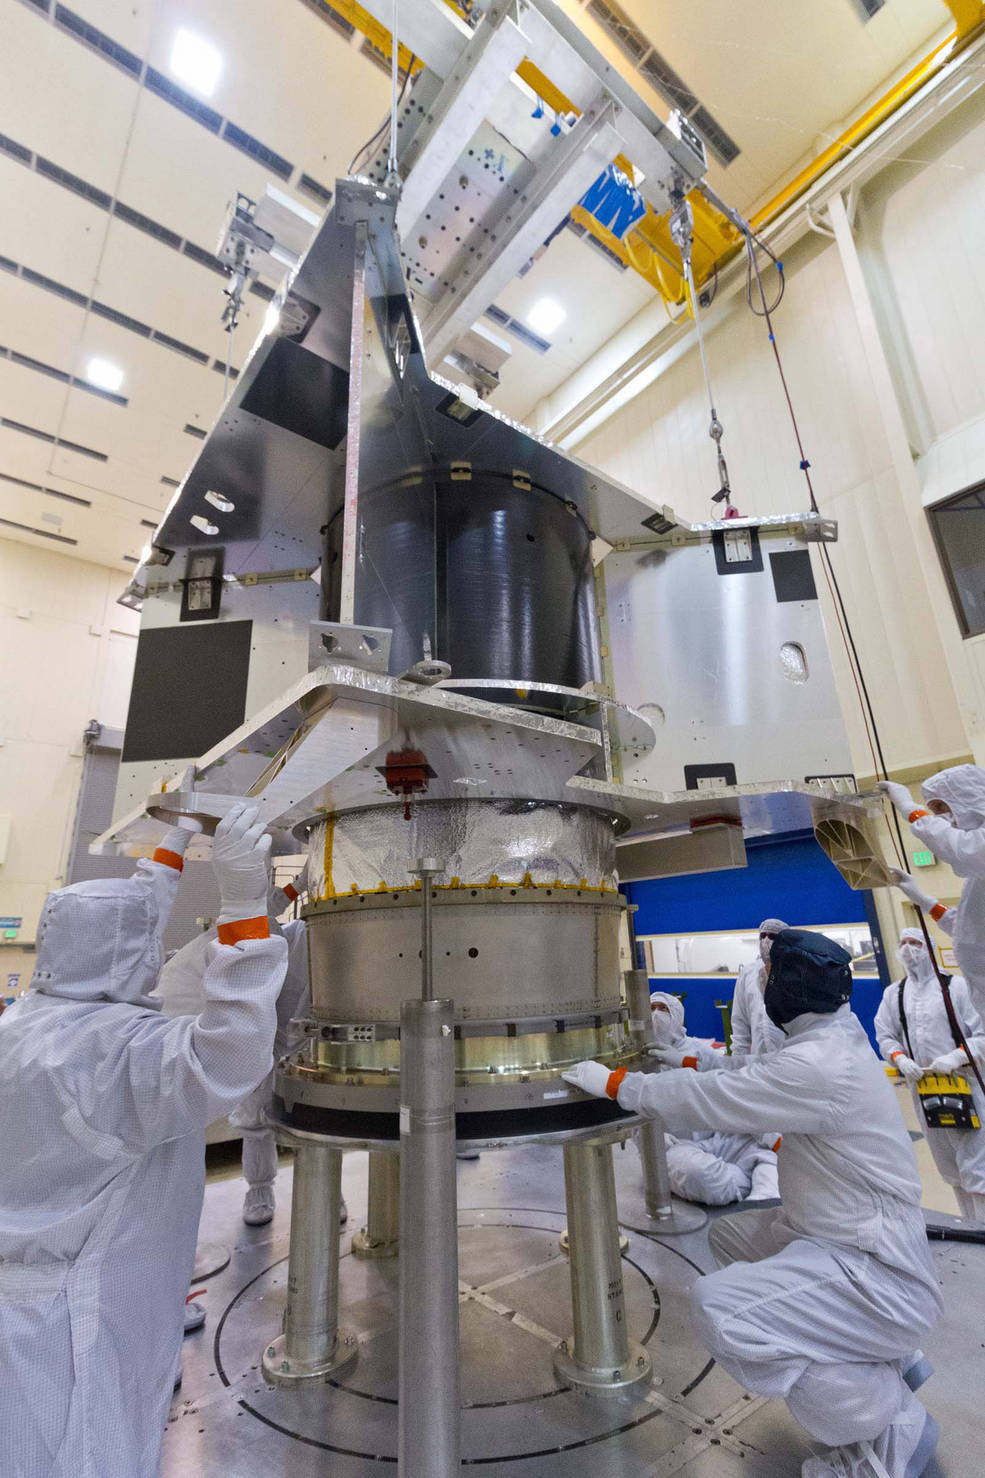 The OSIRIS-REx spacecraft core structure is successfully lowered and mated to the hydrazine propellant tank and boat tail assembly at Lockheed Martin, Denver, Colo. Credits: Lockheed Martin